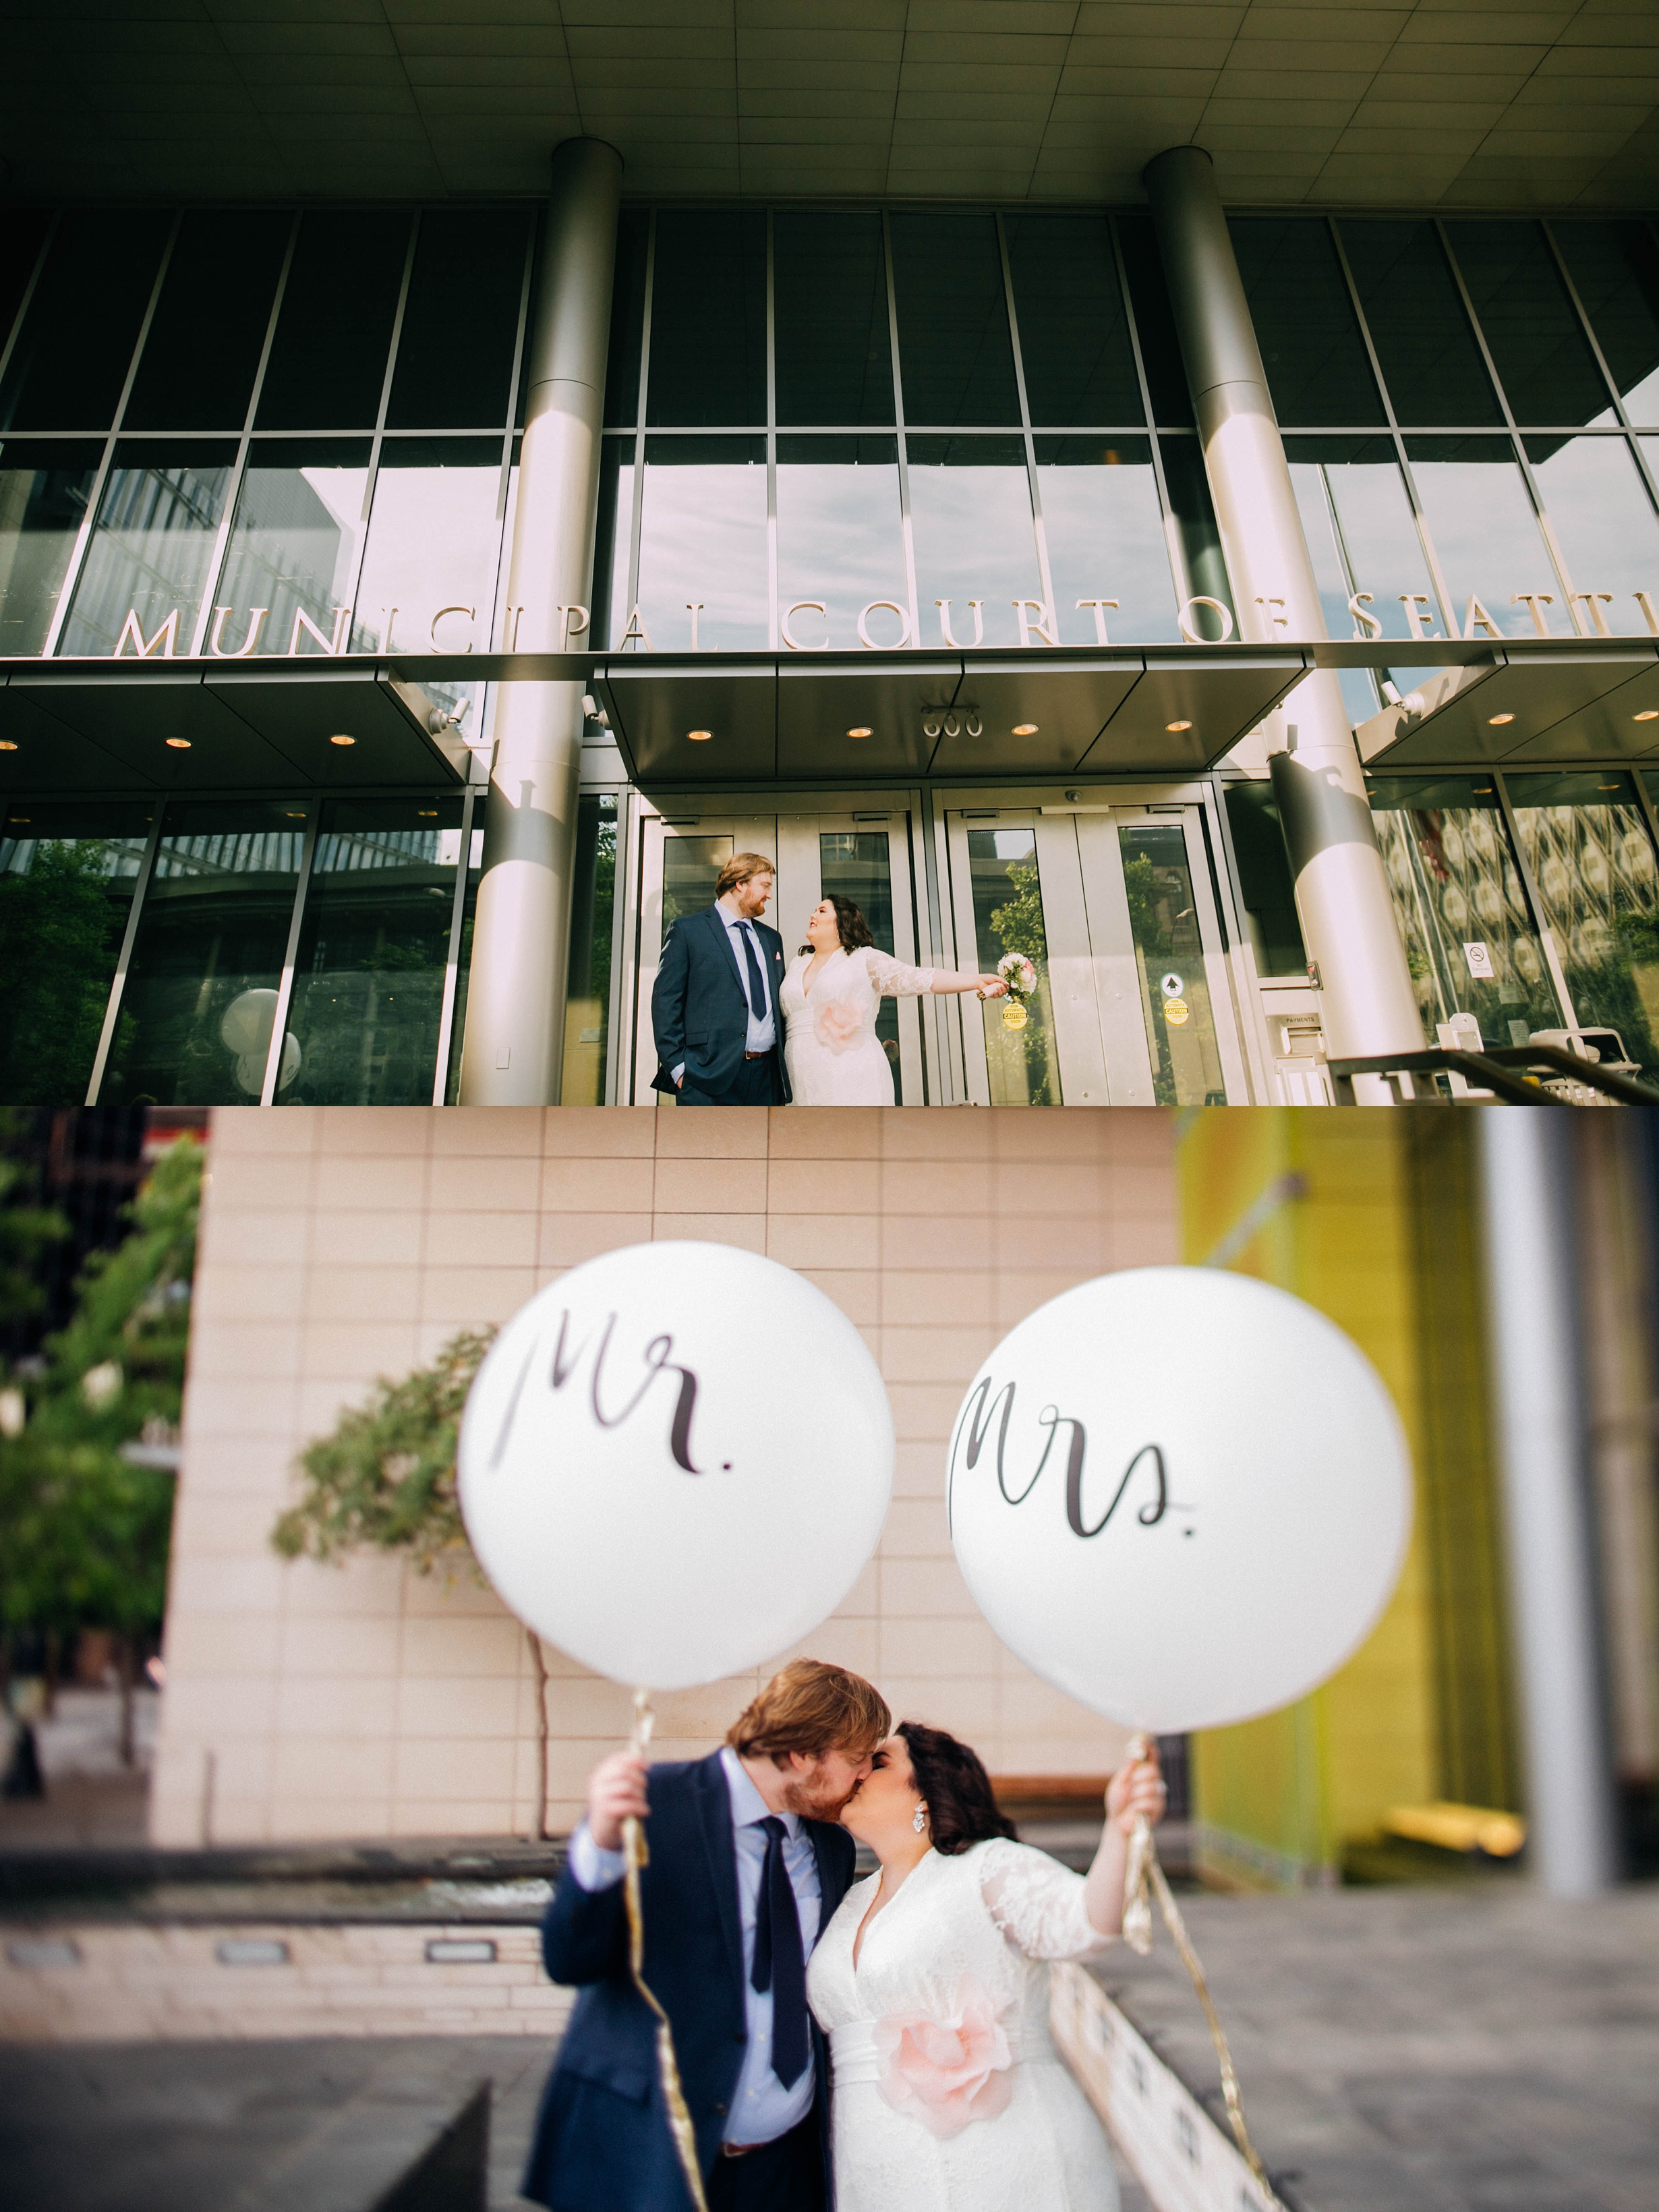 ashley_vos_seattle_Courthouse_ wedding_photographer_0158.jpg